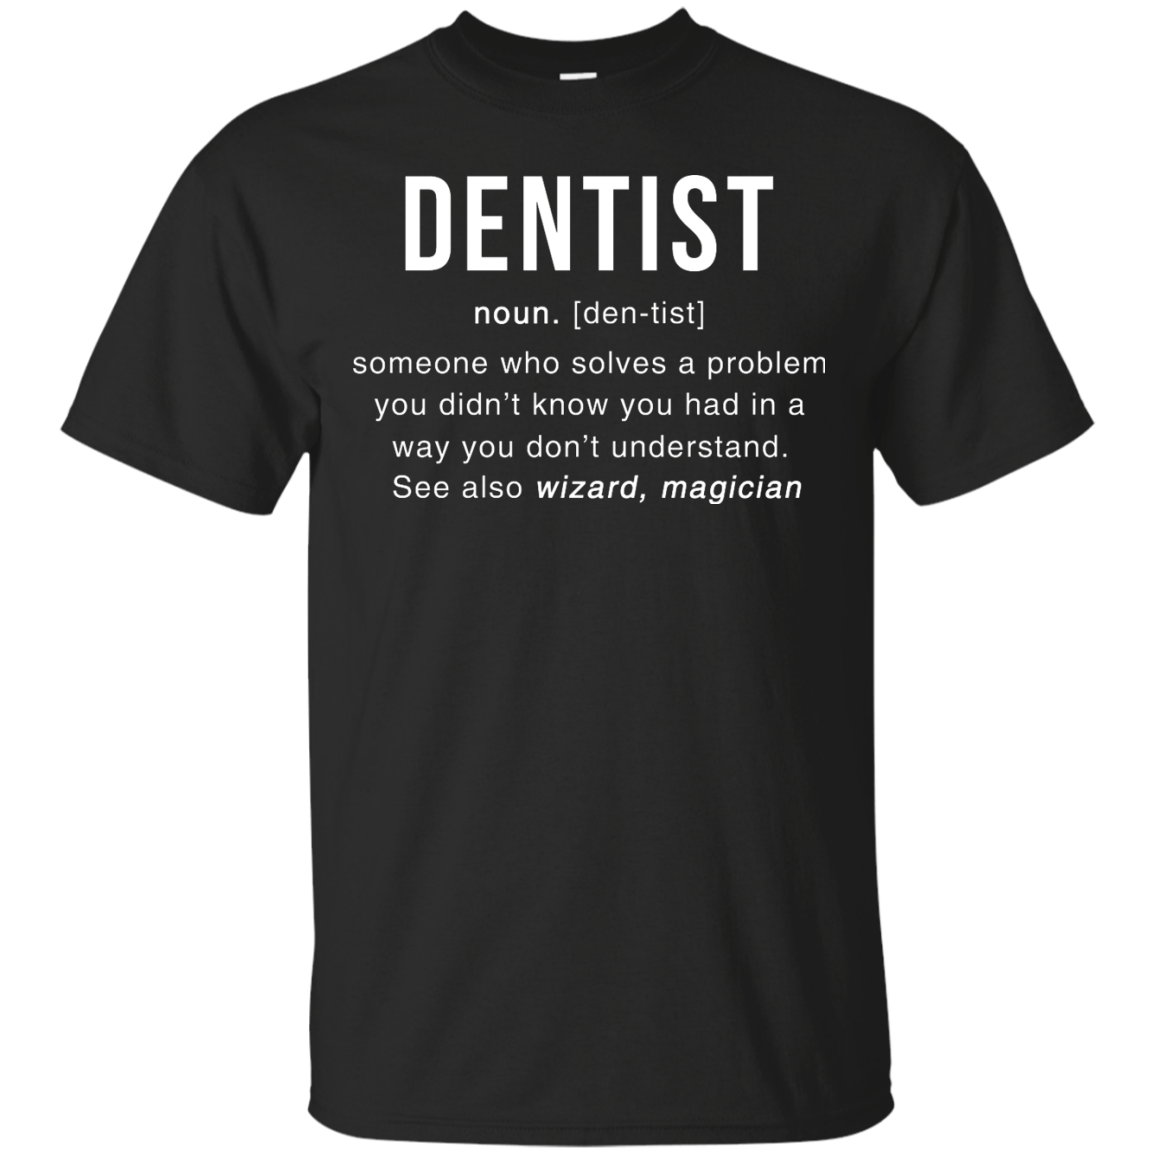 Dentist Meaning T shirt Dentist Noun Definition T Shirt & Hoodies